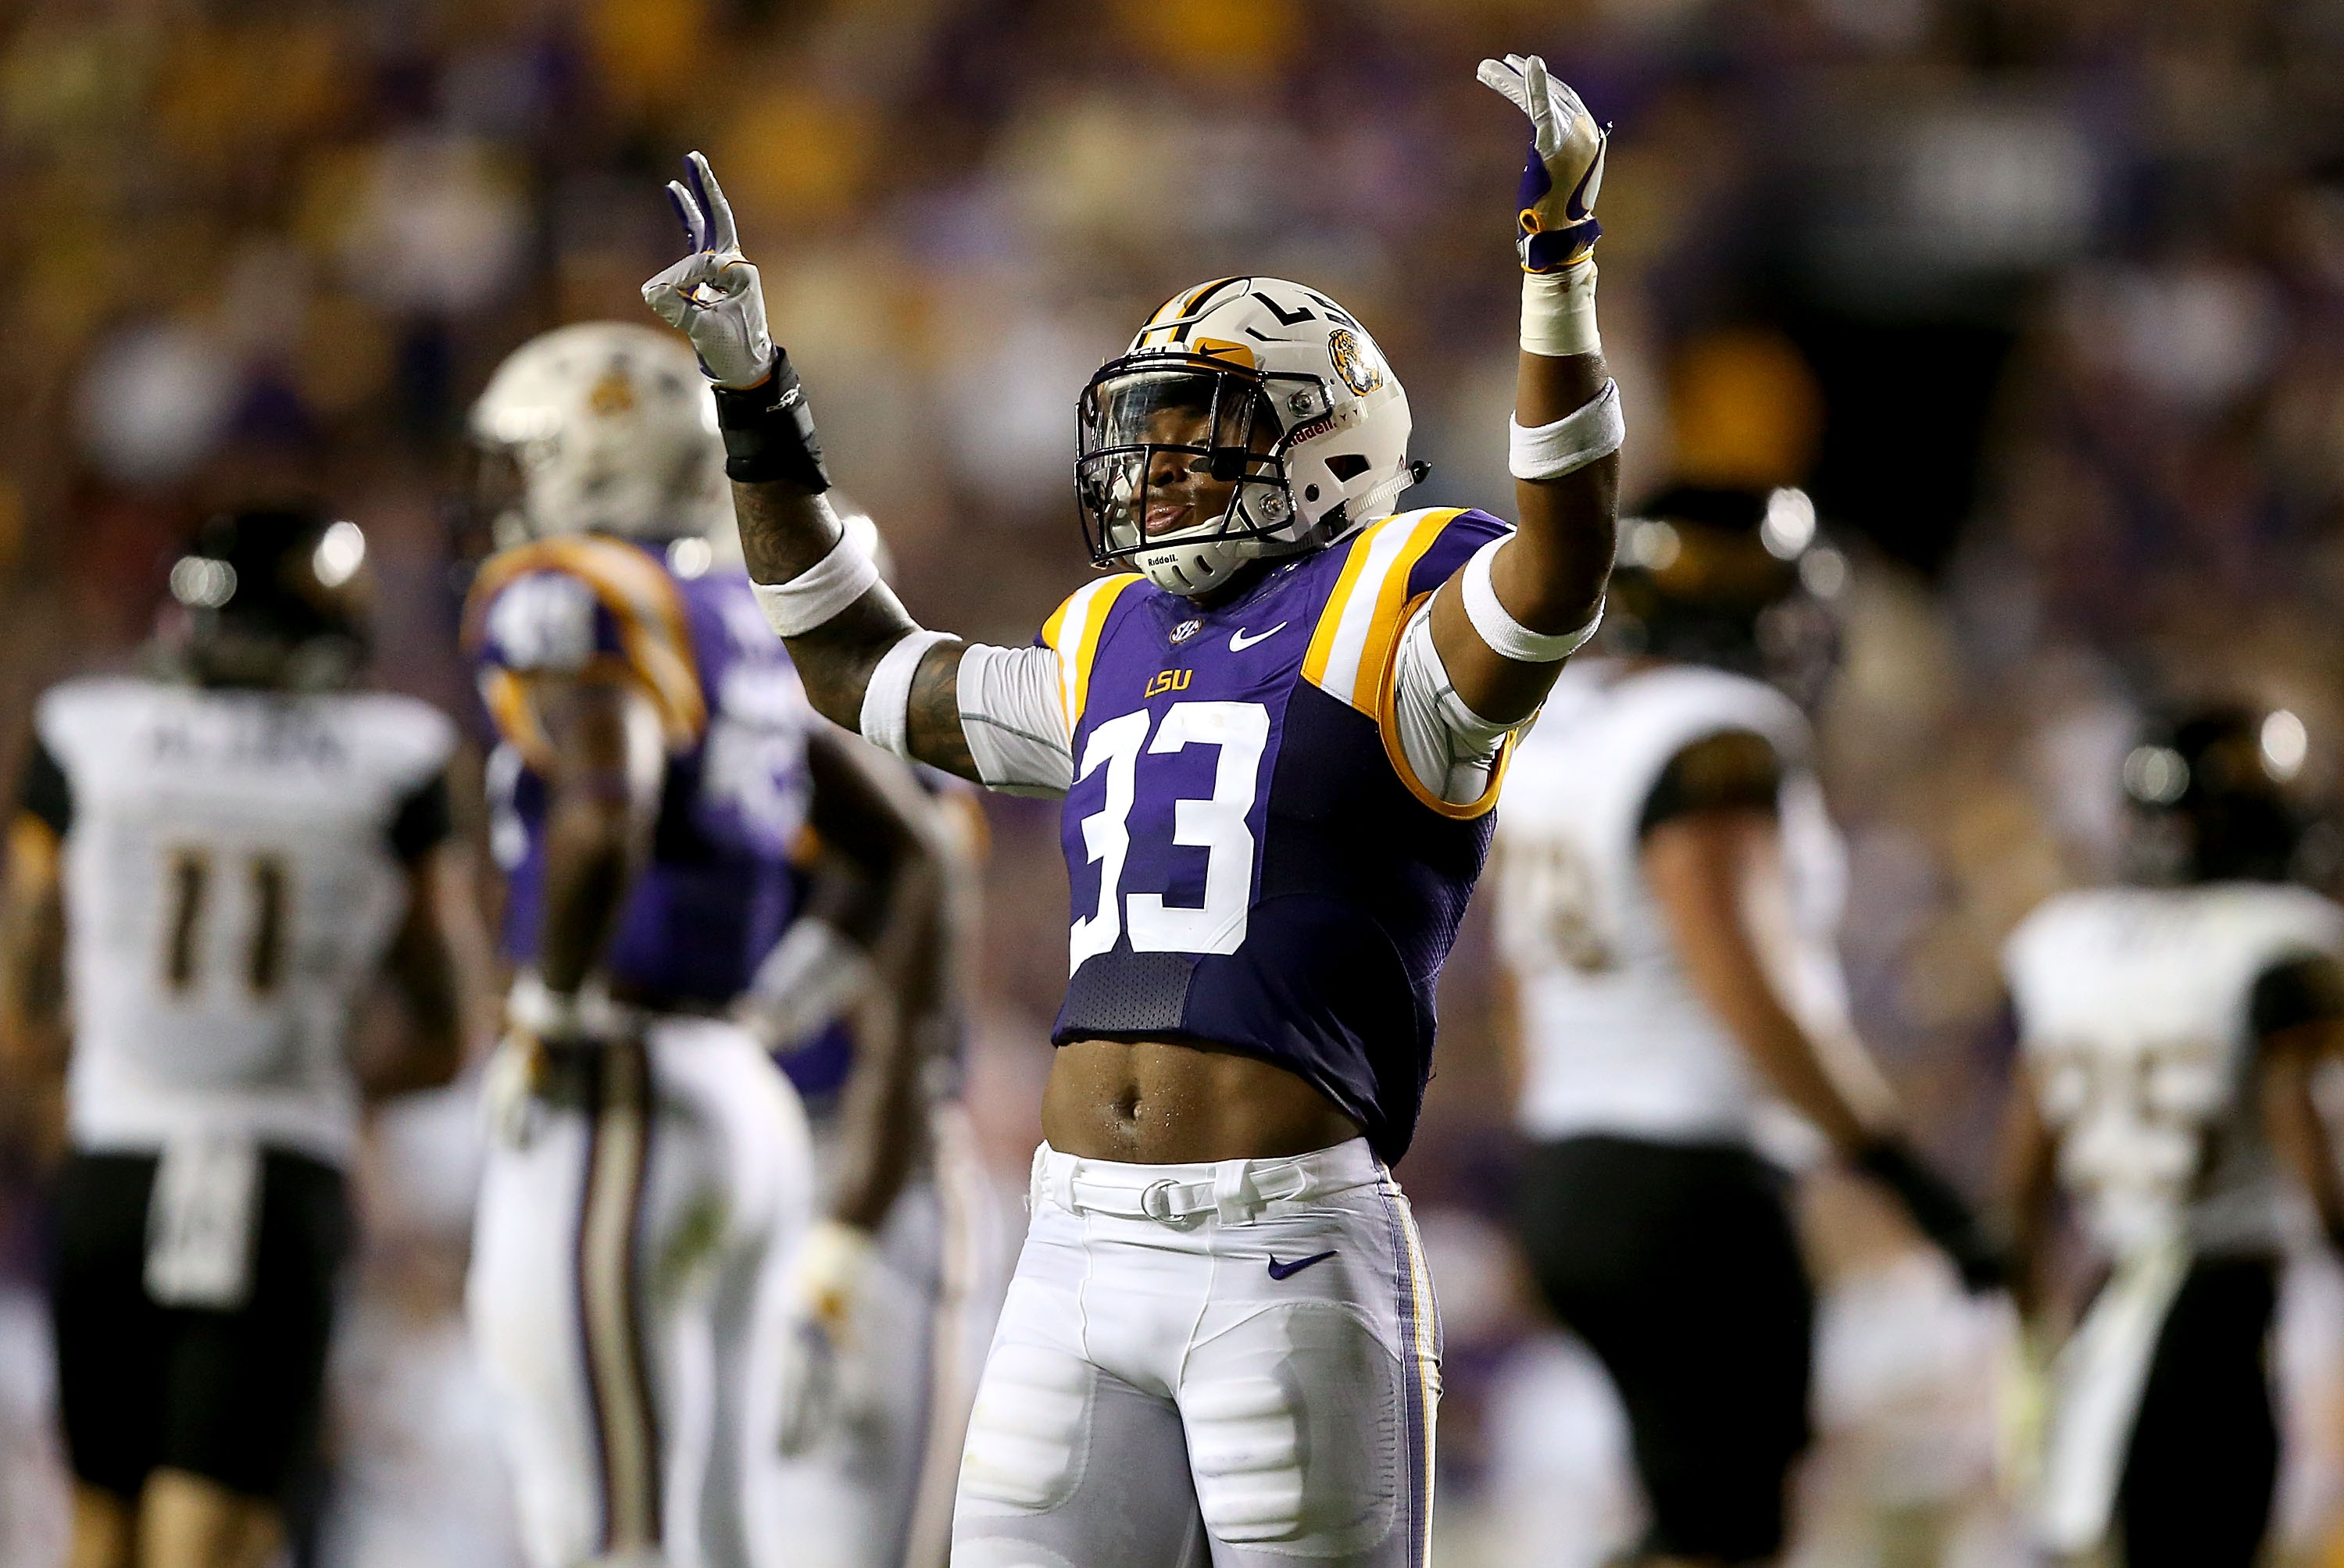 LSU safety Jamal Adams is a consensus top-10 NFL Draft prospect. (Getty Images)